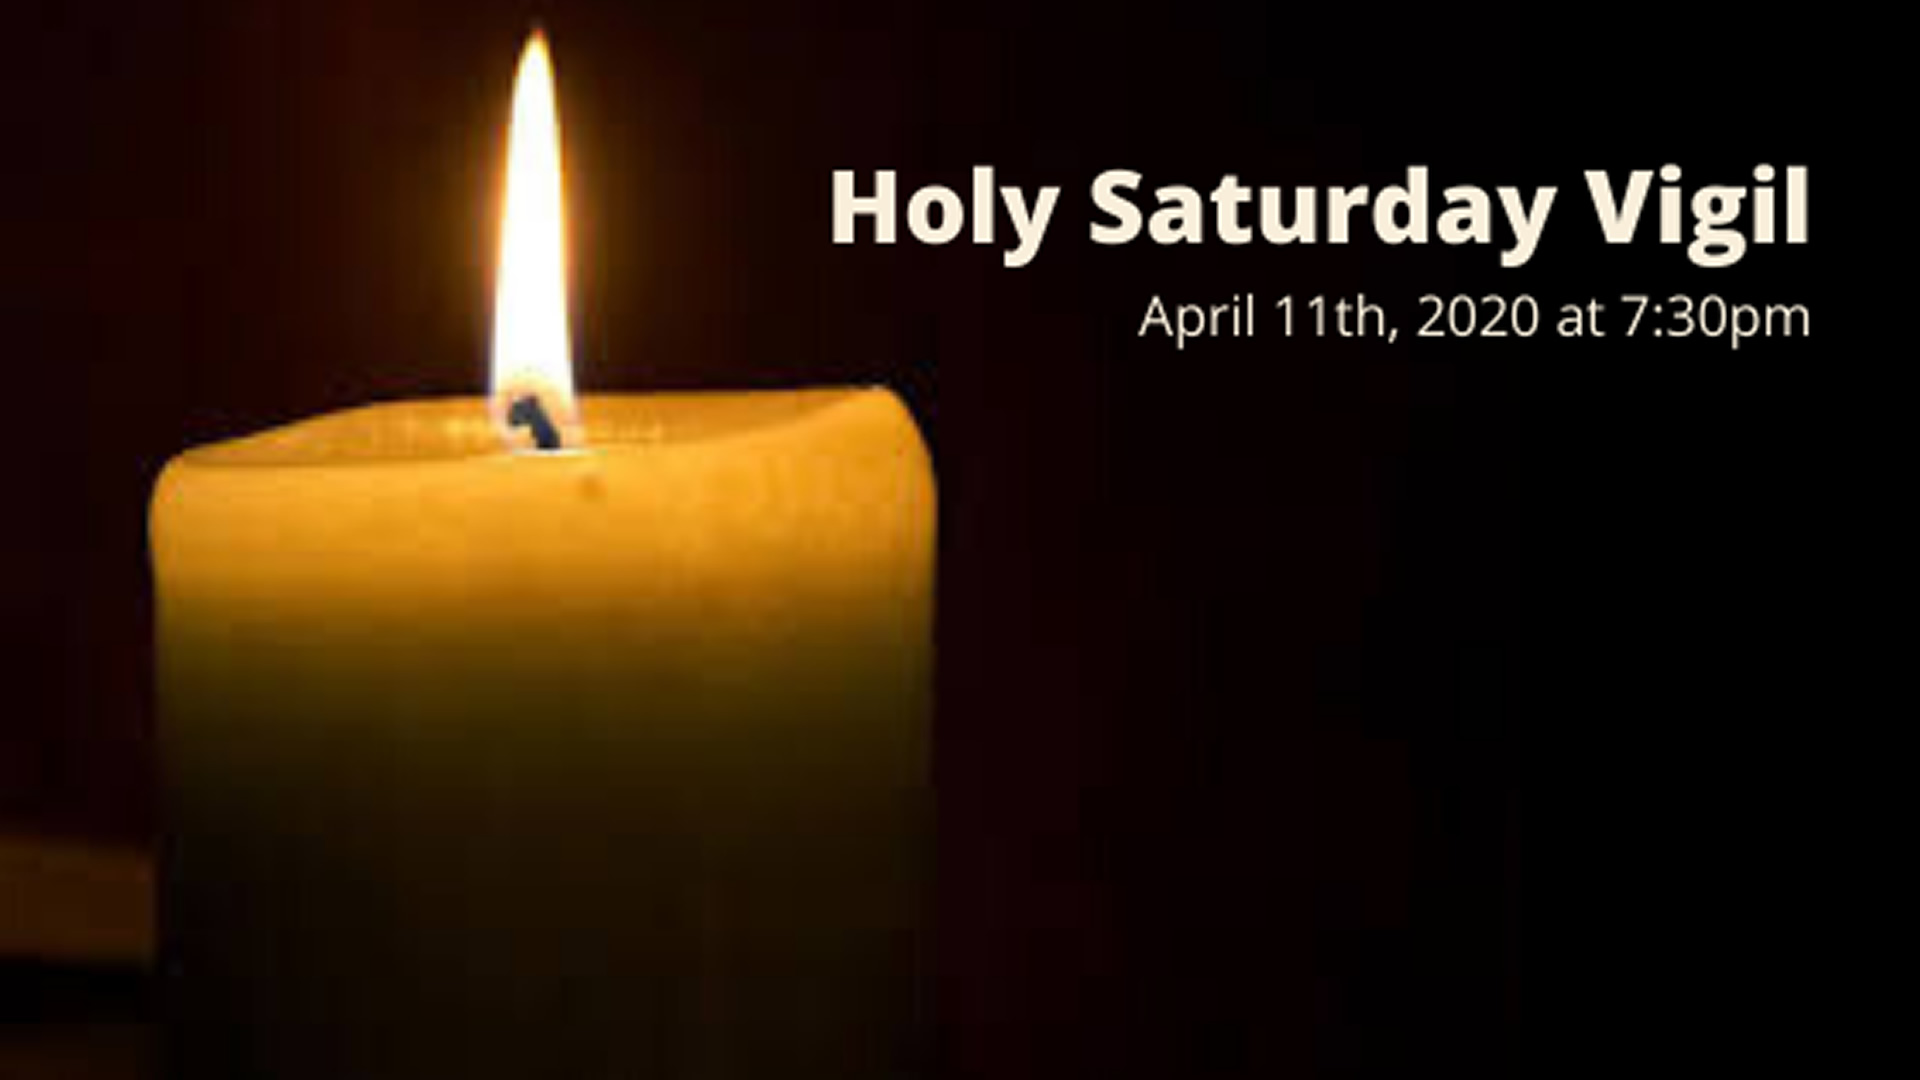 Holy Saturday - Live-streamed from the Catholic Diocese of Cleveland - Saturday, April 11th at 7:30pm